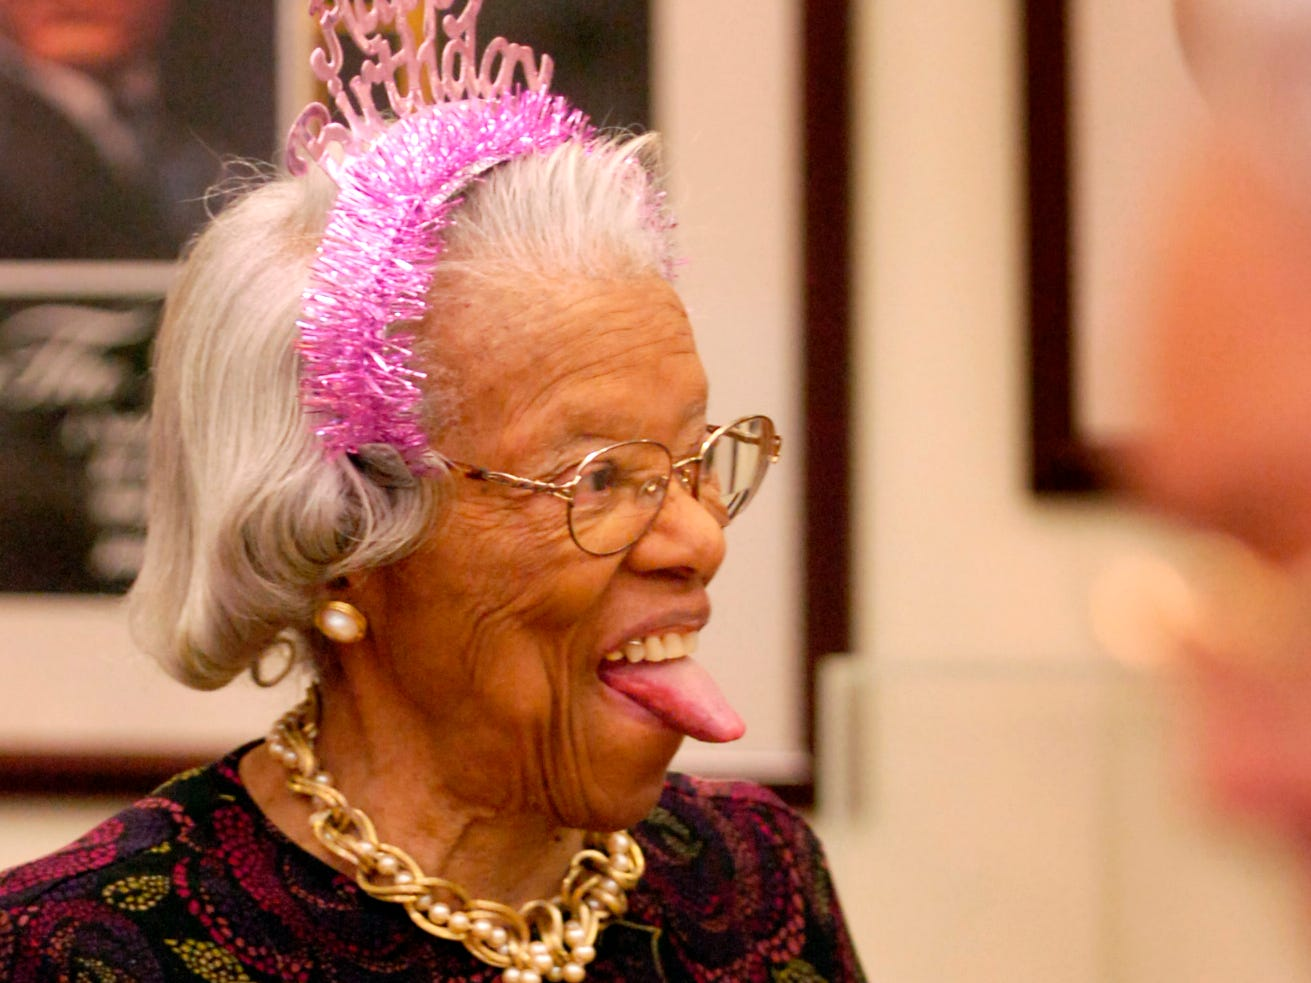 """""""I feel like I'm sixteen again,"""" said Lois Kelly then adding, """"I haven't had a birthday party since was a kid."""" Friends of Kelly held a 99th birthday party for her Friday at the Beck Cultural Exchange Center with lunch, cake and presents. Following the party they played bridge."""